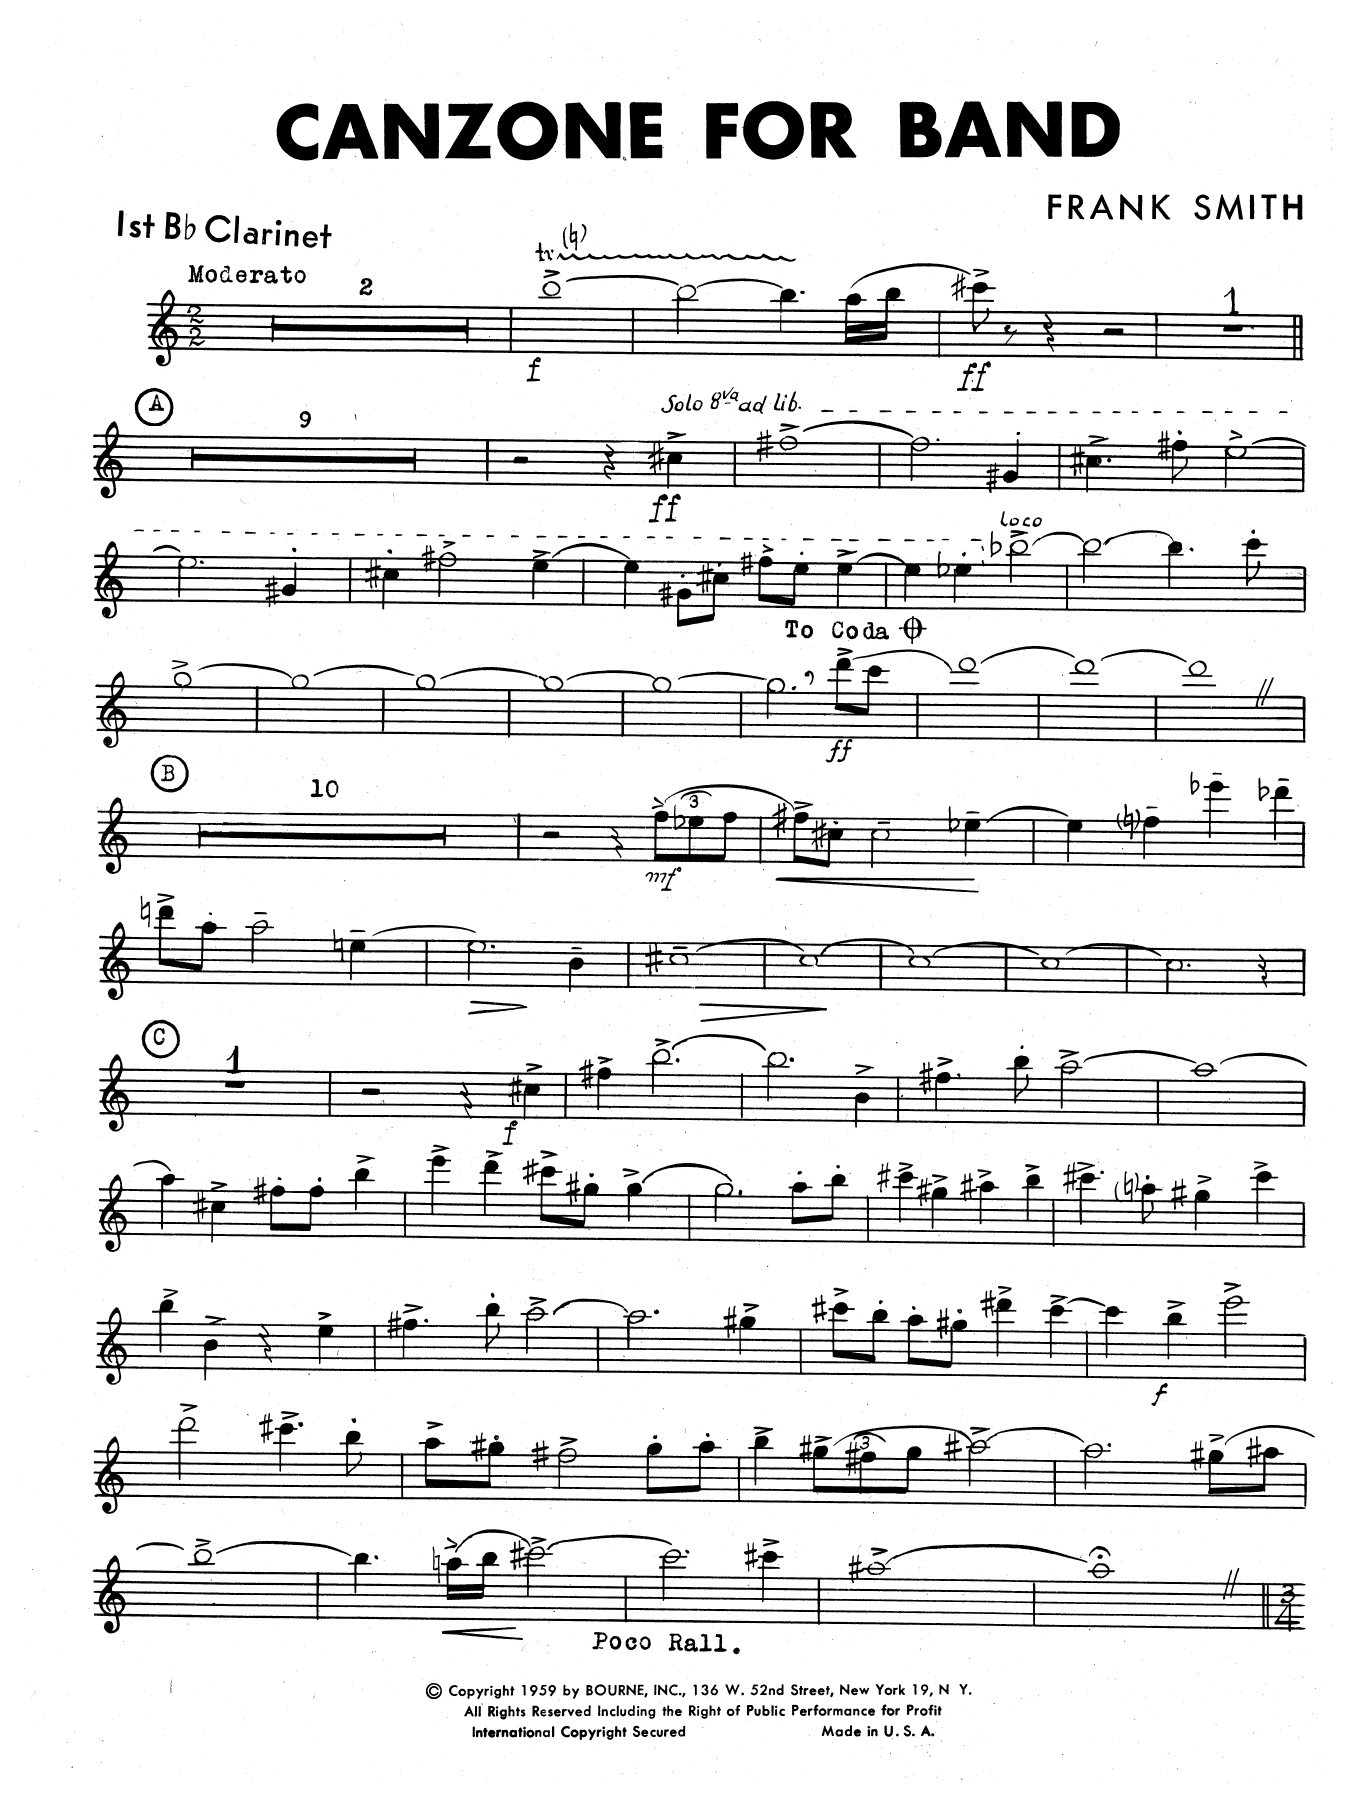 Canzone For Band - 1st Bb Clarinet